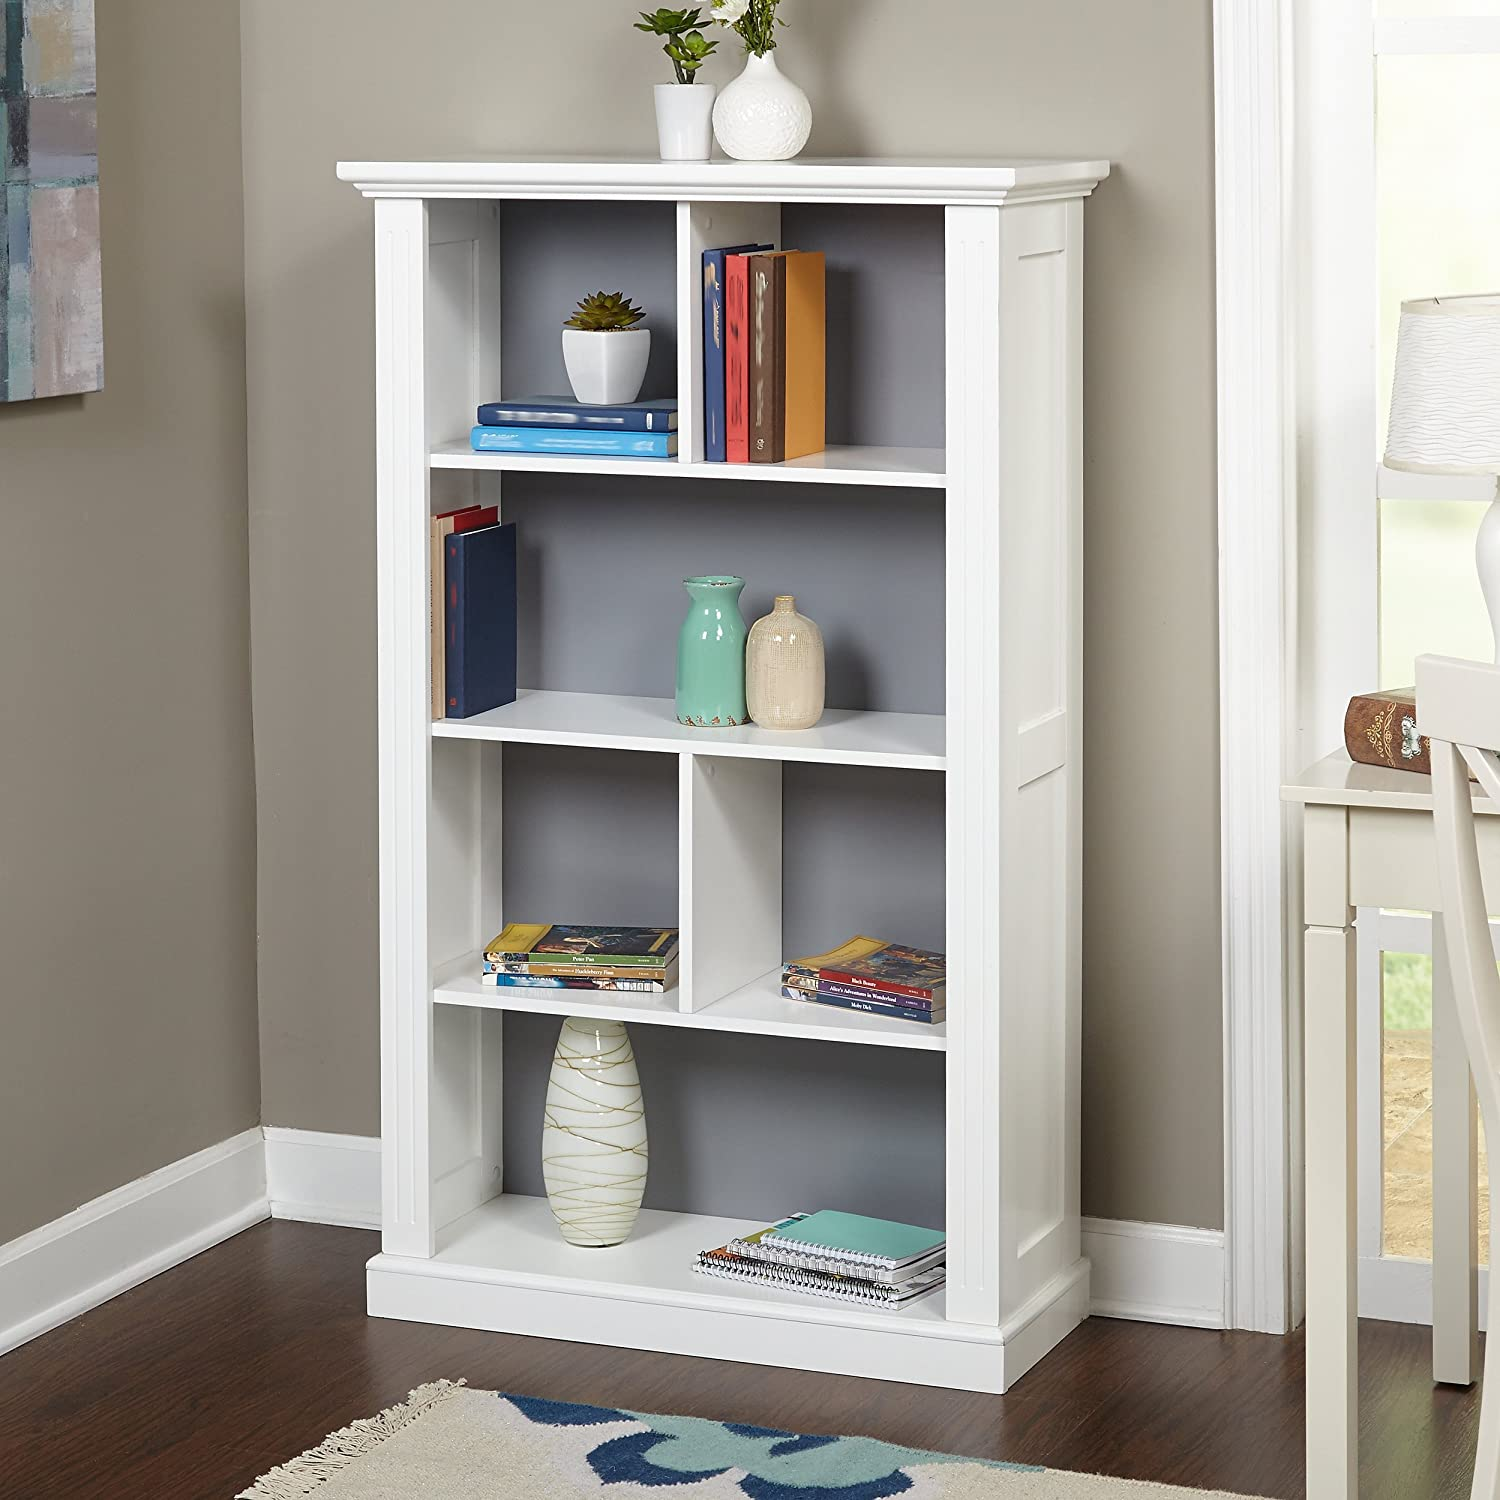 Target Marketing Systems Ella Bookcase with 4 Shelves and a Reversible Back Panel of Either Solid Gray or Blue with White Polka Dots, Antique White